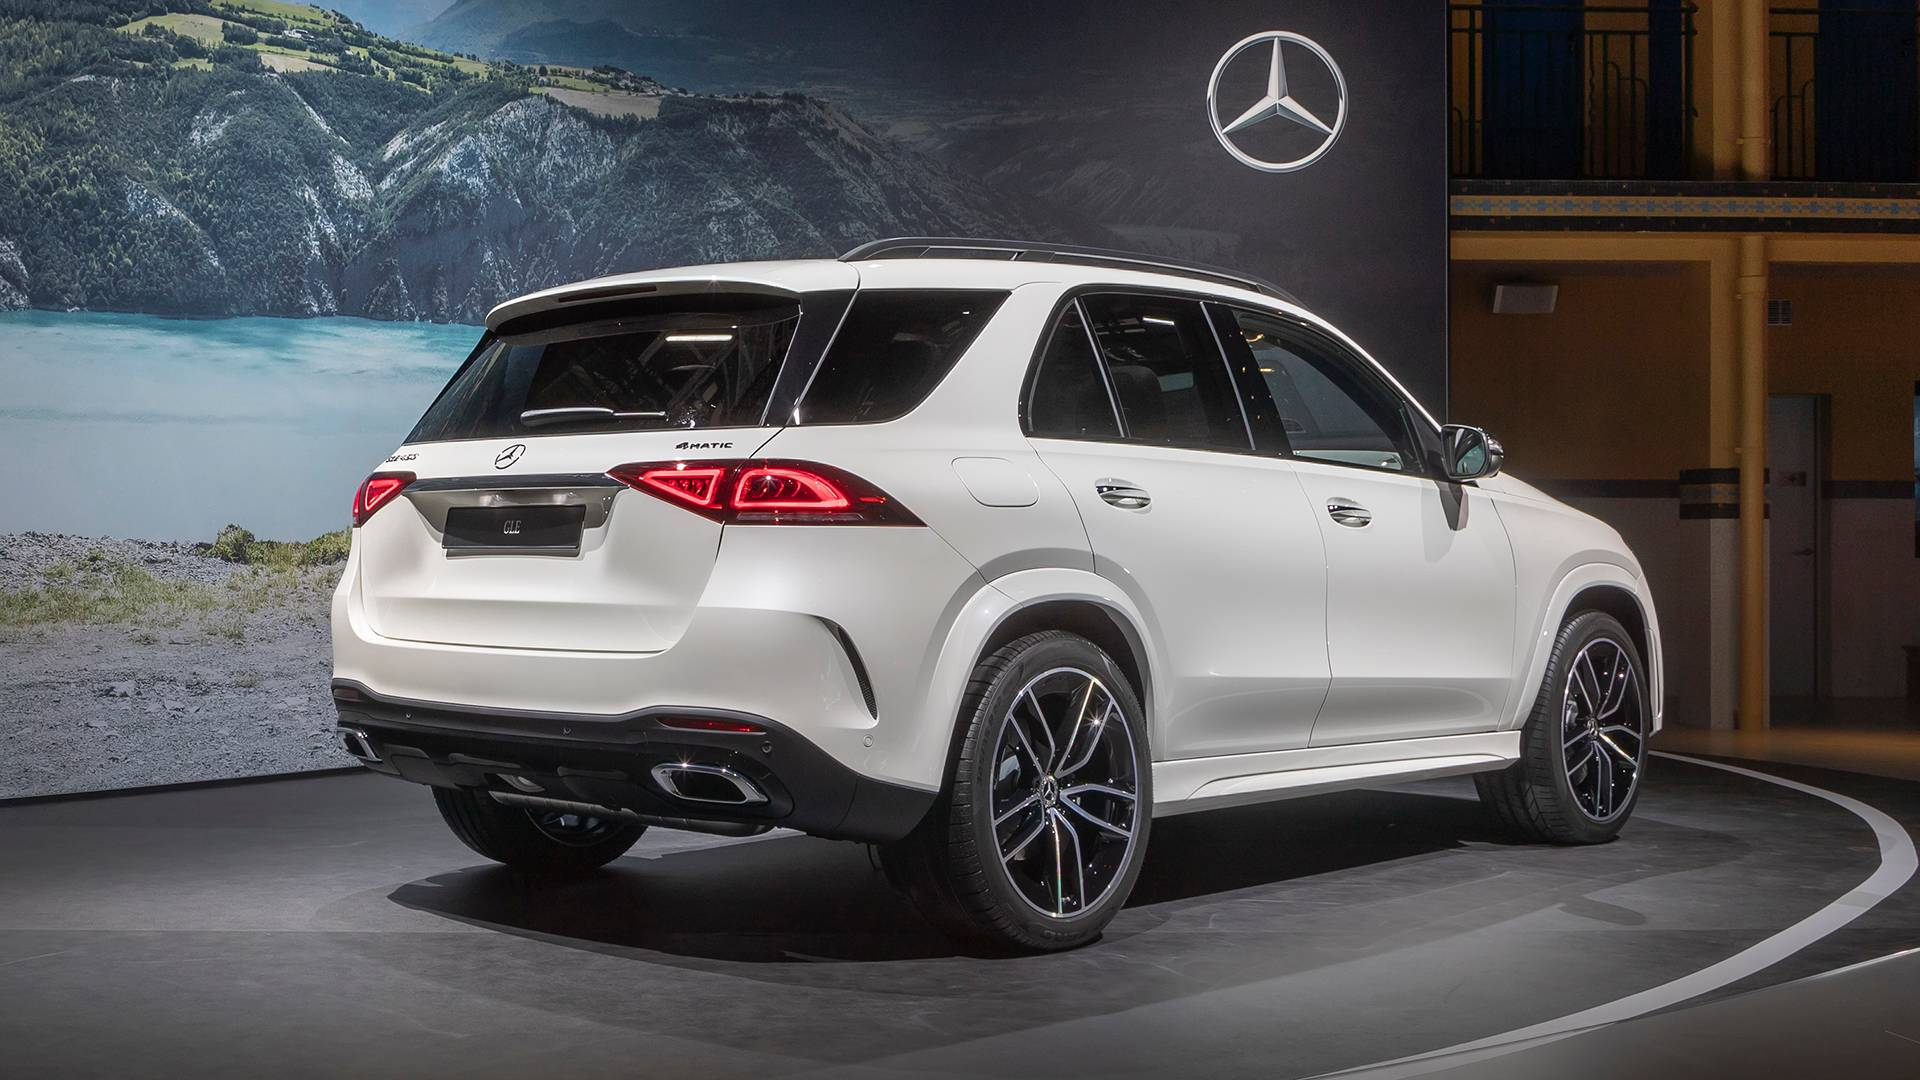 27 The 2020 Mercedes GLE Release Date and Concept